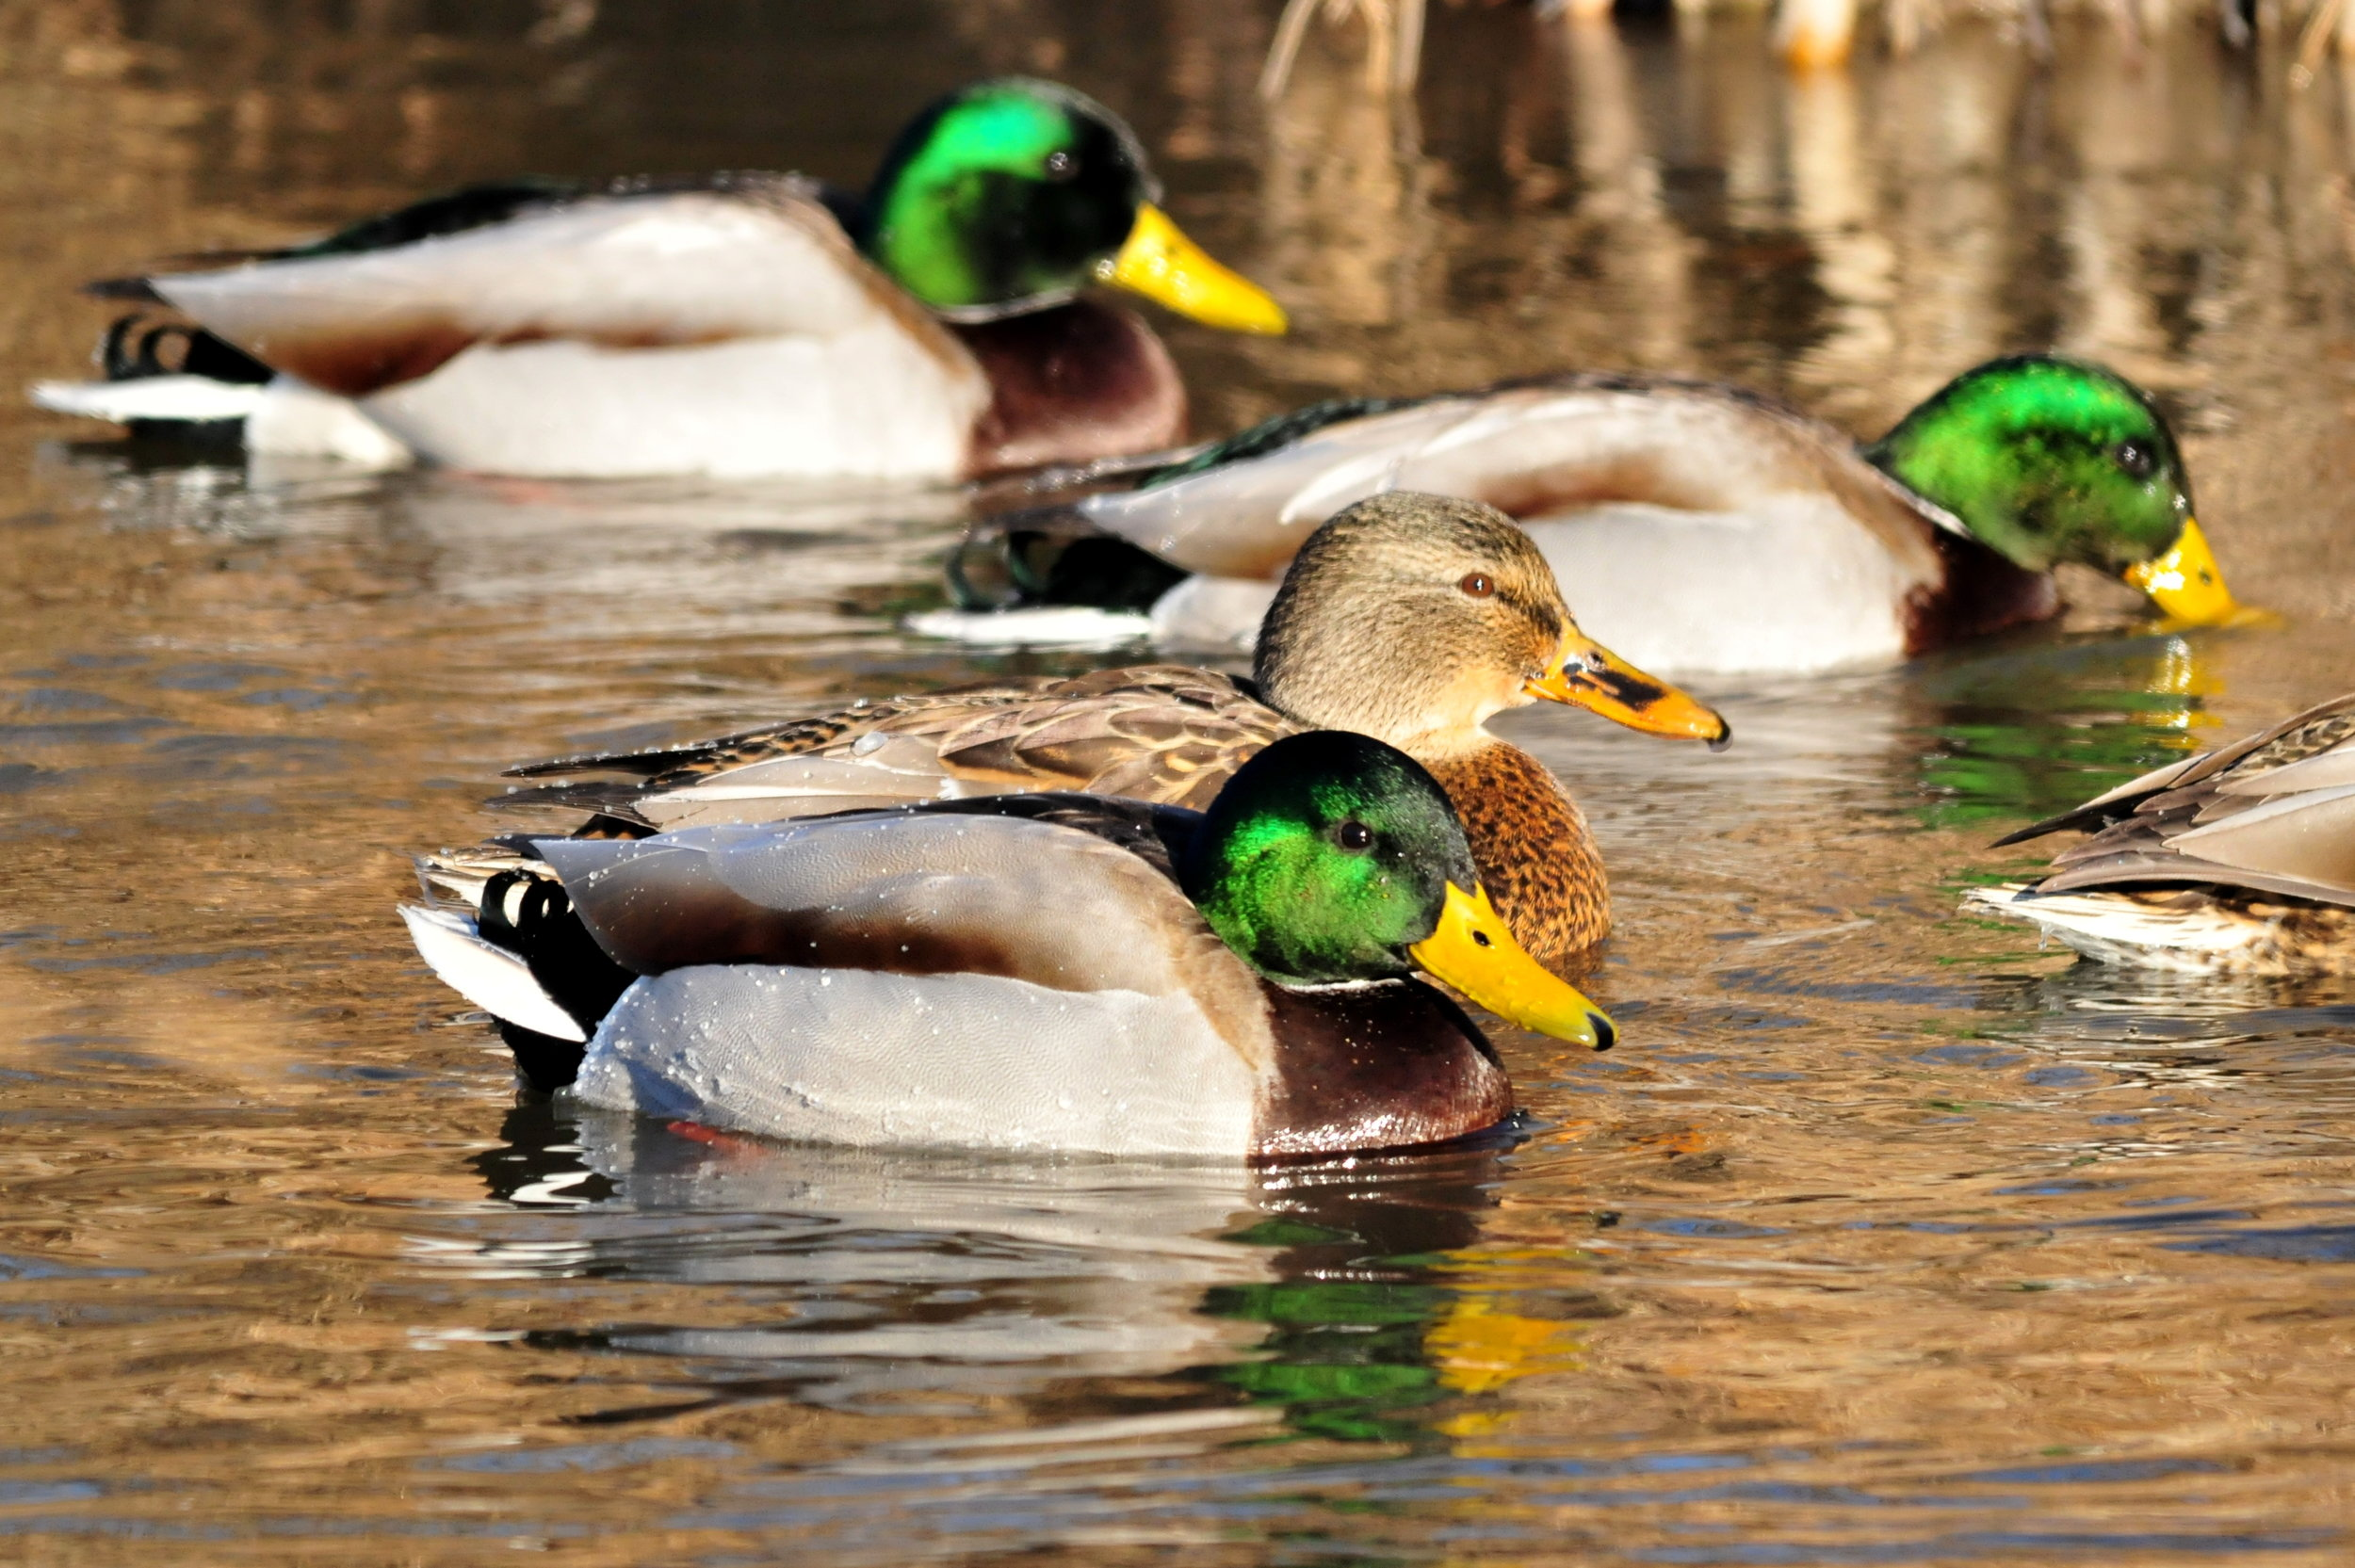 """- Mallard (Anas platyrhynchos)Mallards live in any available source of water, such as rivers, lakes, ponds, and other man-made bodies. Their diet includes aquatic animals such as tadpoles, insects, and crustaceans, and plant matter such as tubers, leaves, and seeds. They weigh 2.2-2.9 lbs. and have a wingspan of 2.7-3.1 ft. Female mallards make the well-known """"quack"""" noise, whereas males do not quack, but make a raspy noise. They are protected on the US Migratory Bird list.Photo Credits: Tom Koerner/USFWS"""